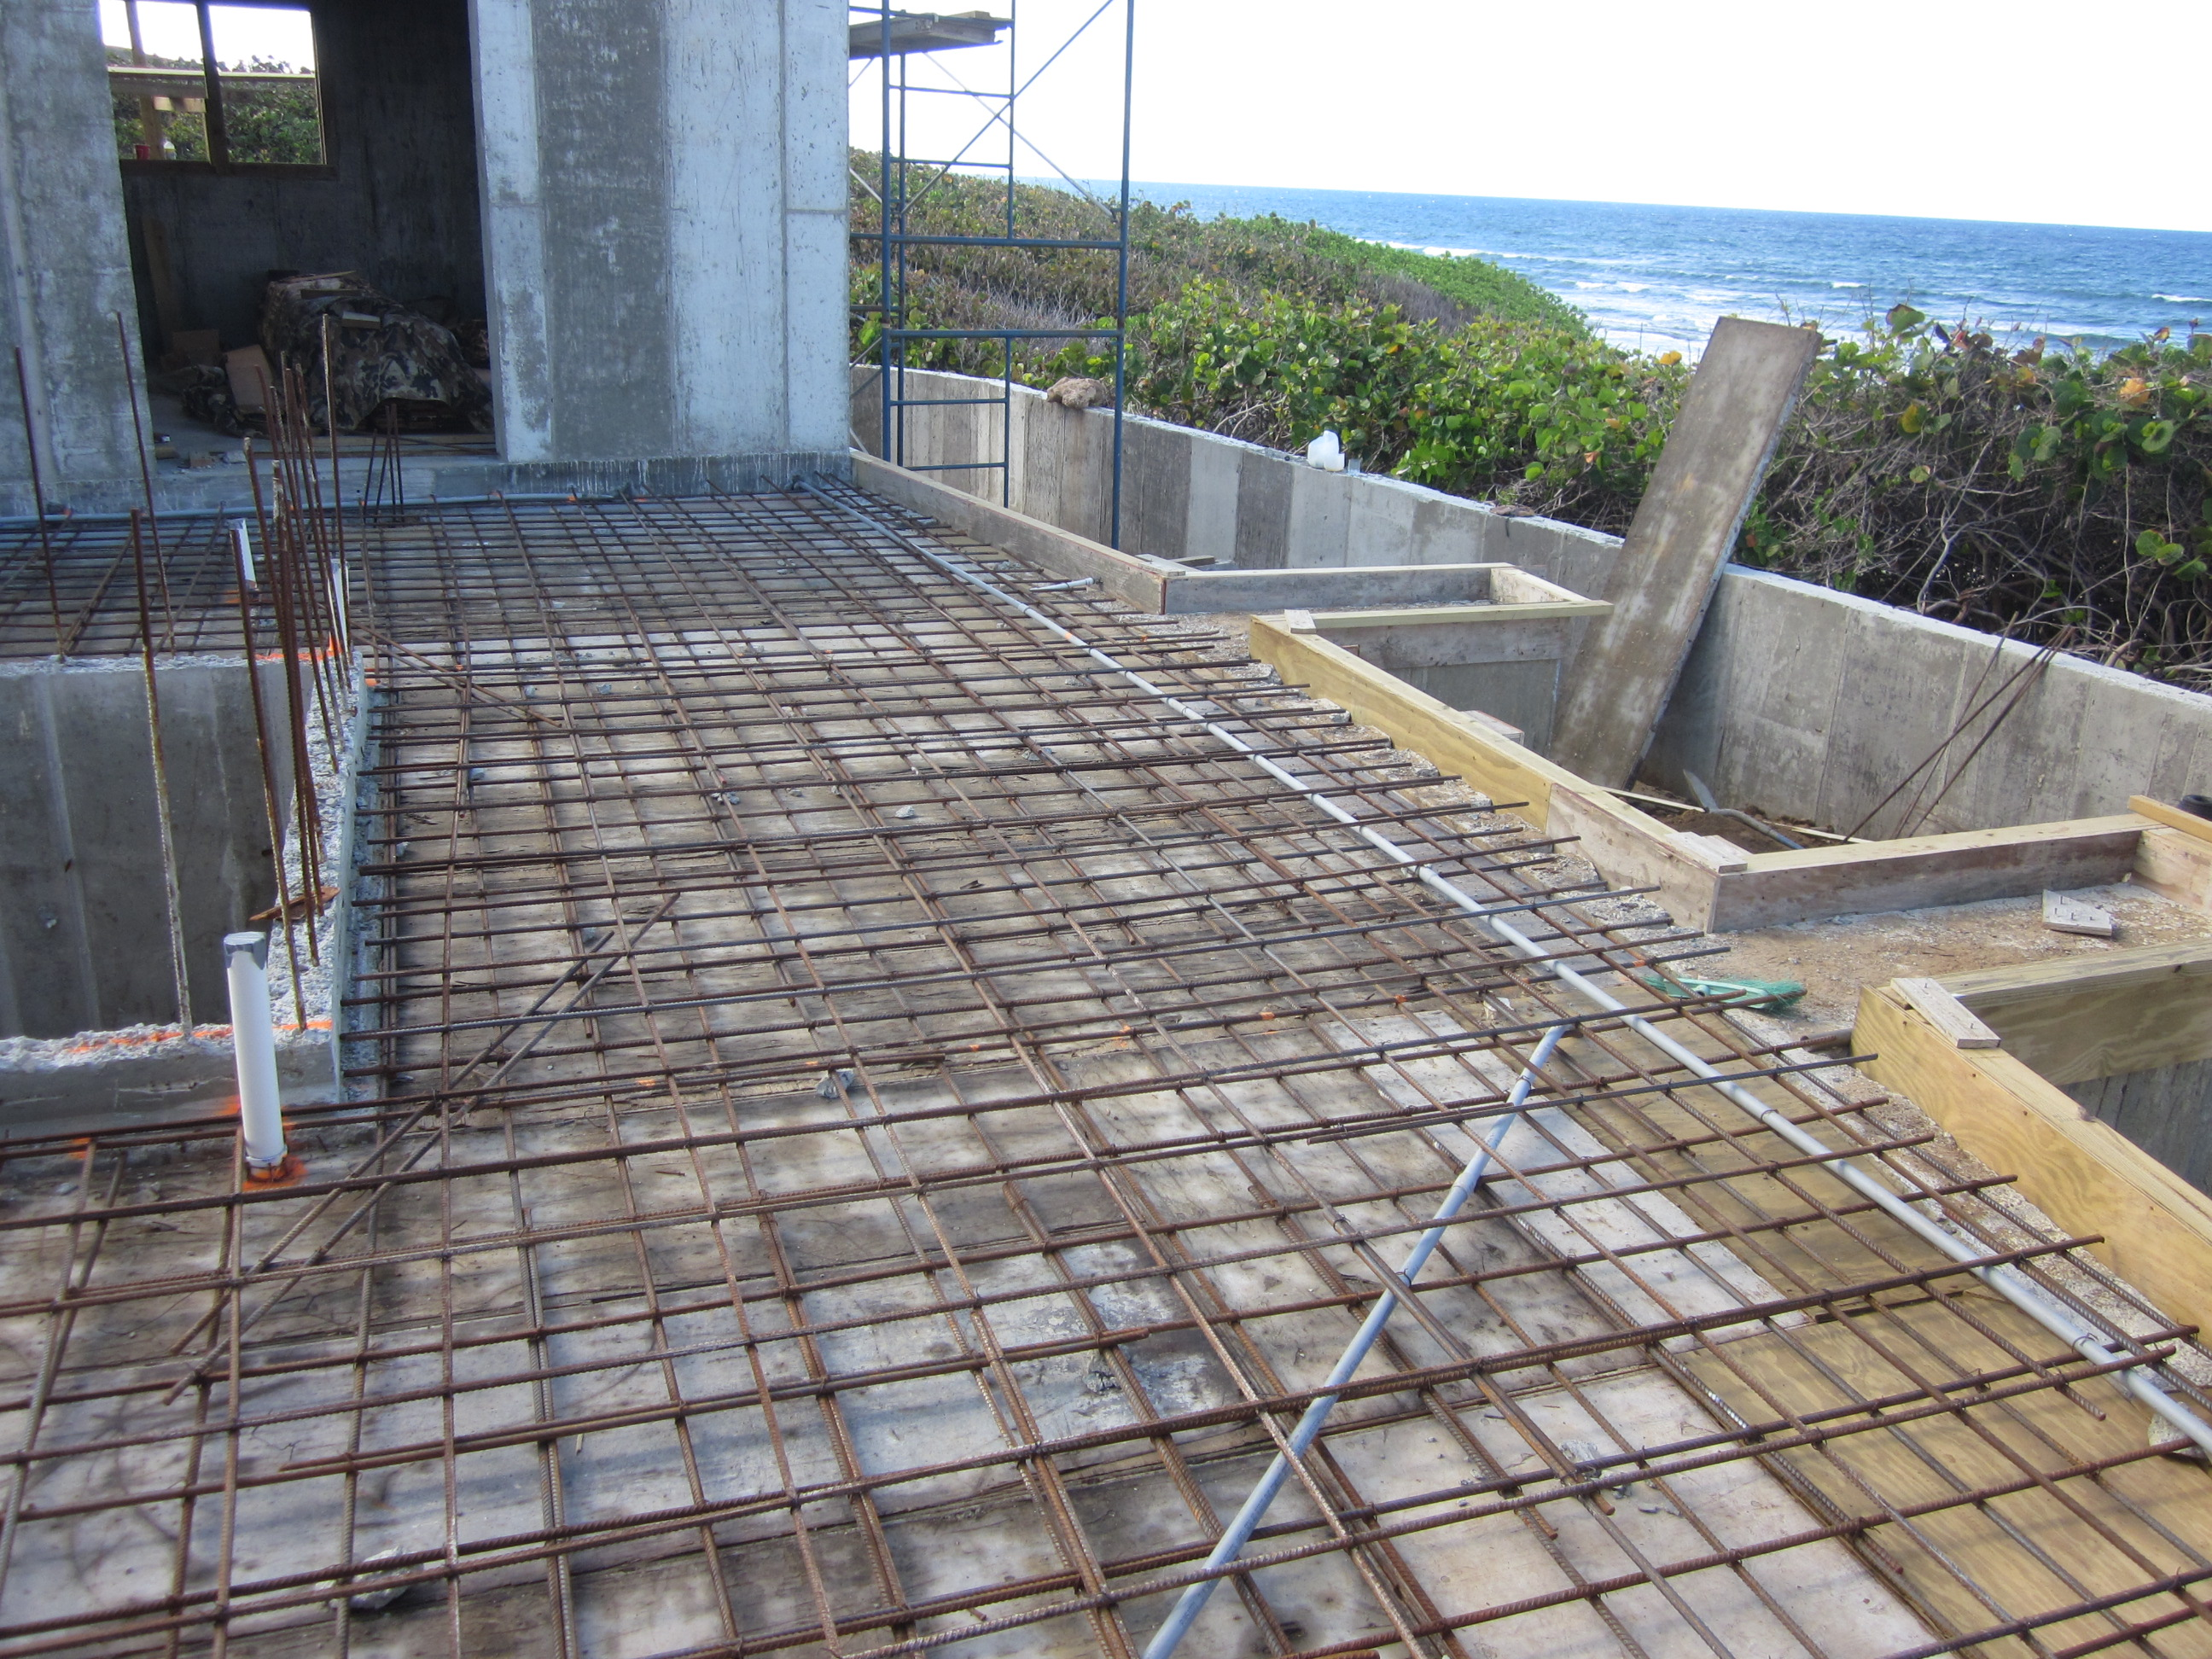 4-11-2011 - Deck Forming